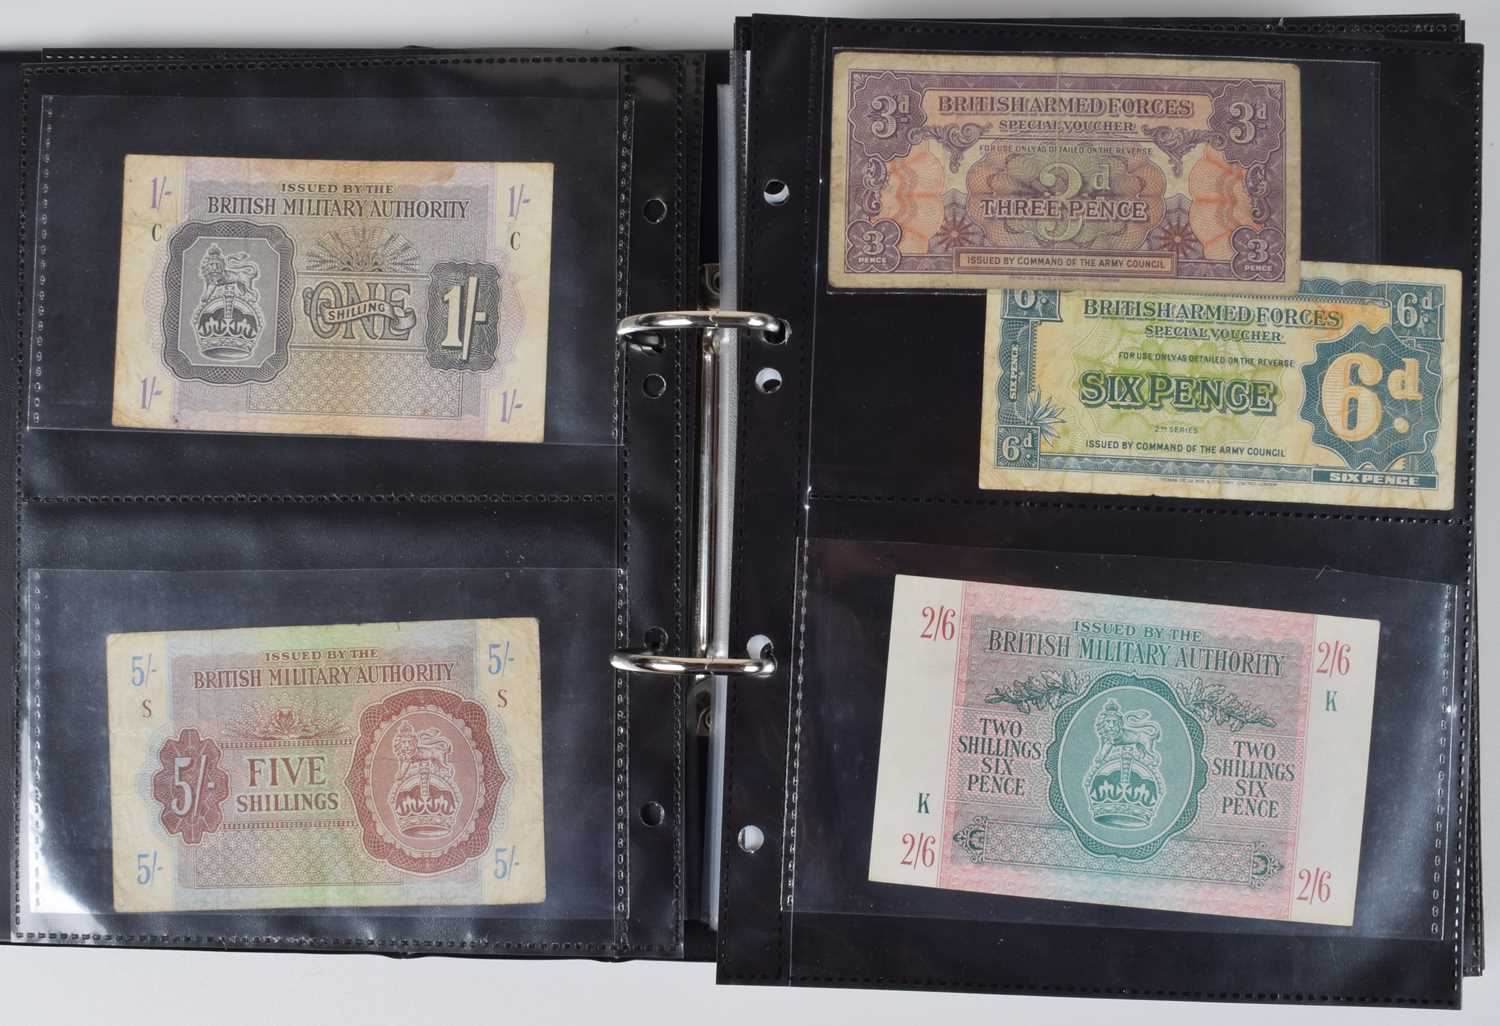 Lot 69 - Selection of foreign banknotes to include WW1 and WW2 German Prisoner of War banknotes.